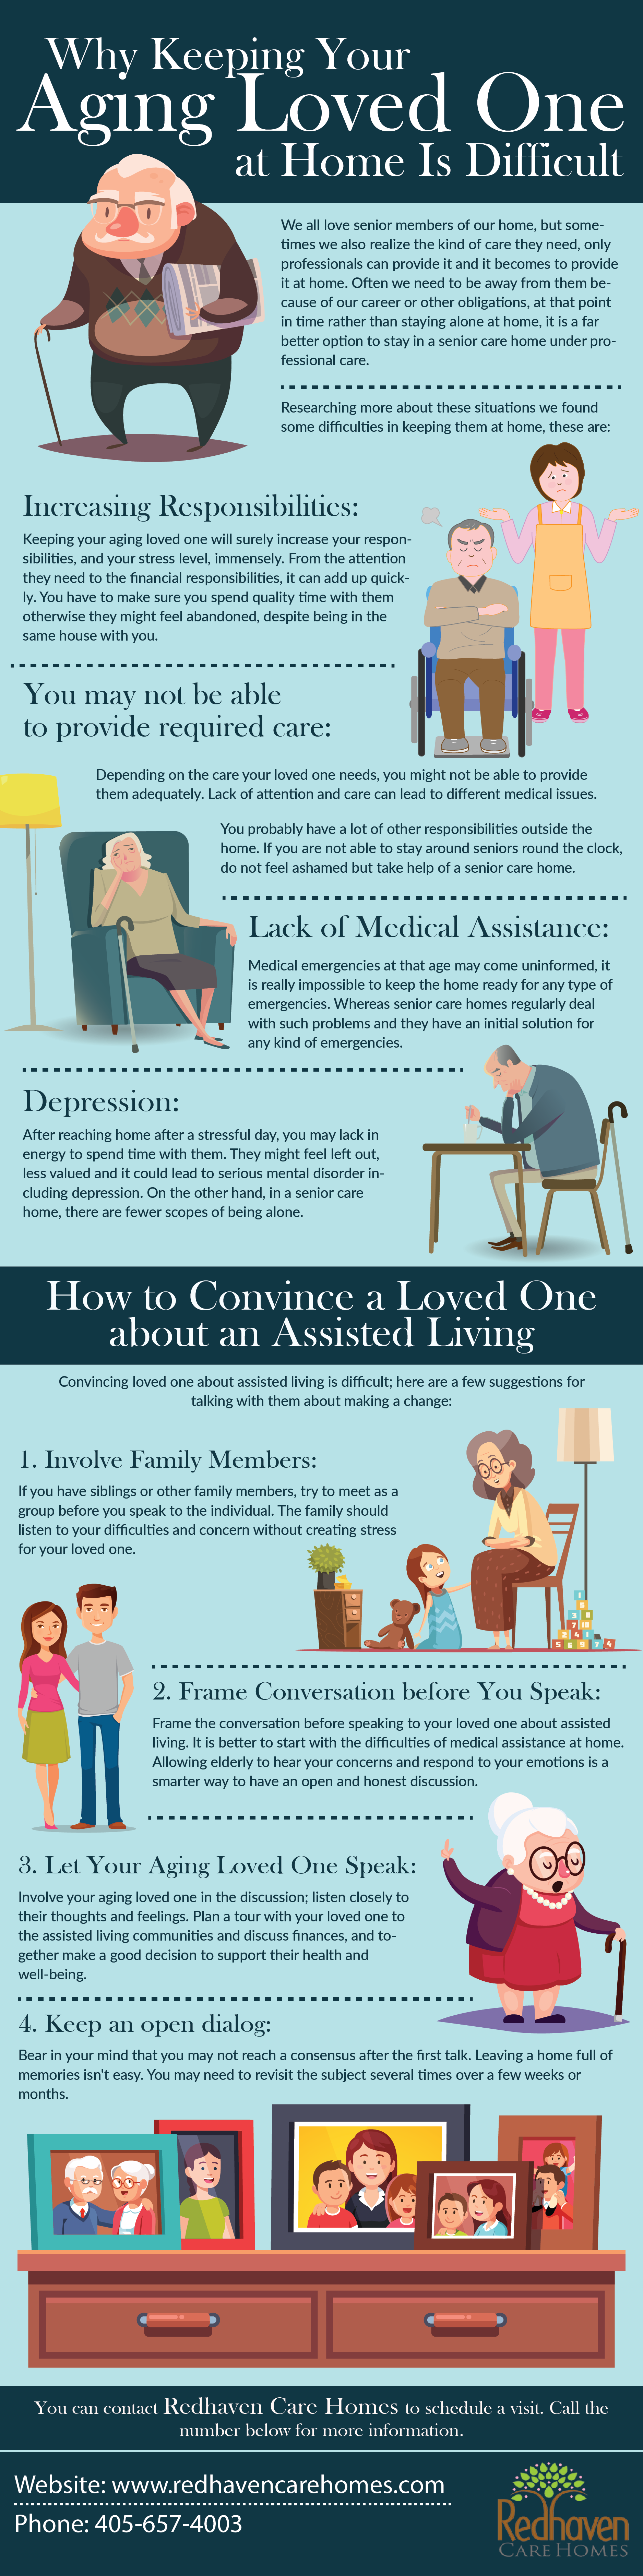 Why Keeping Your Aging Loved One at Home is Difficult